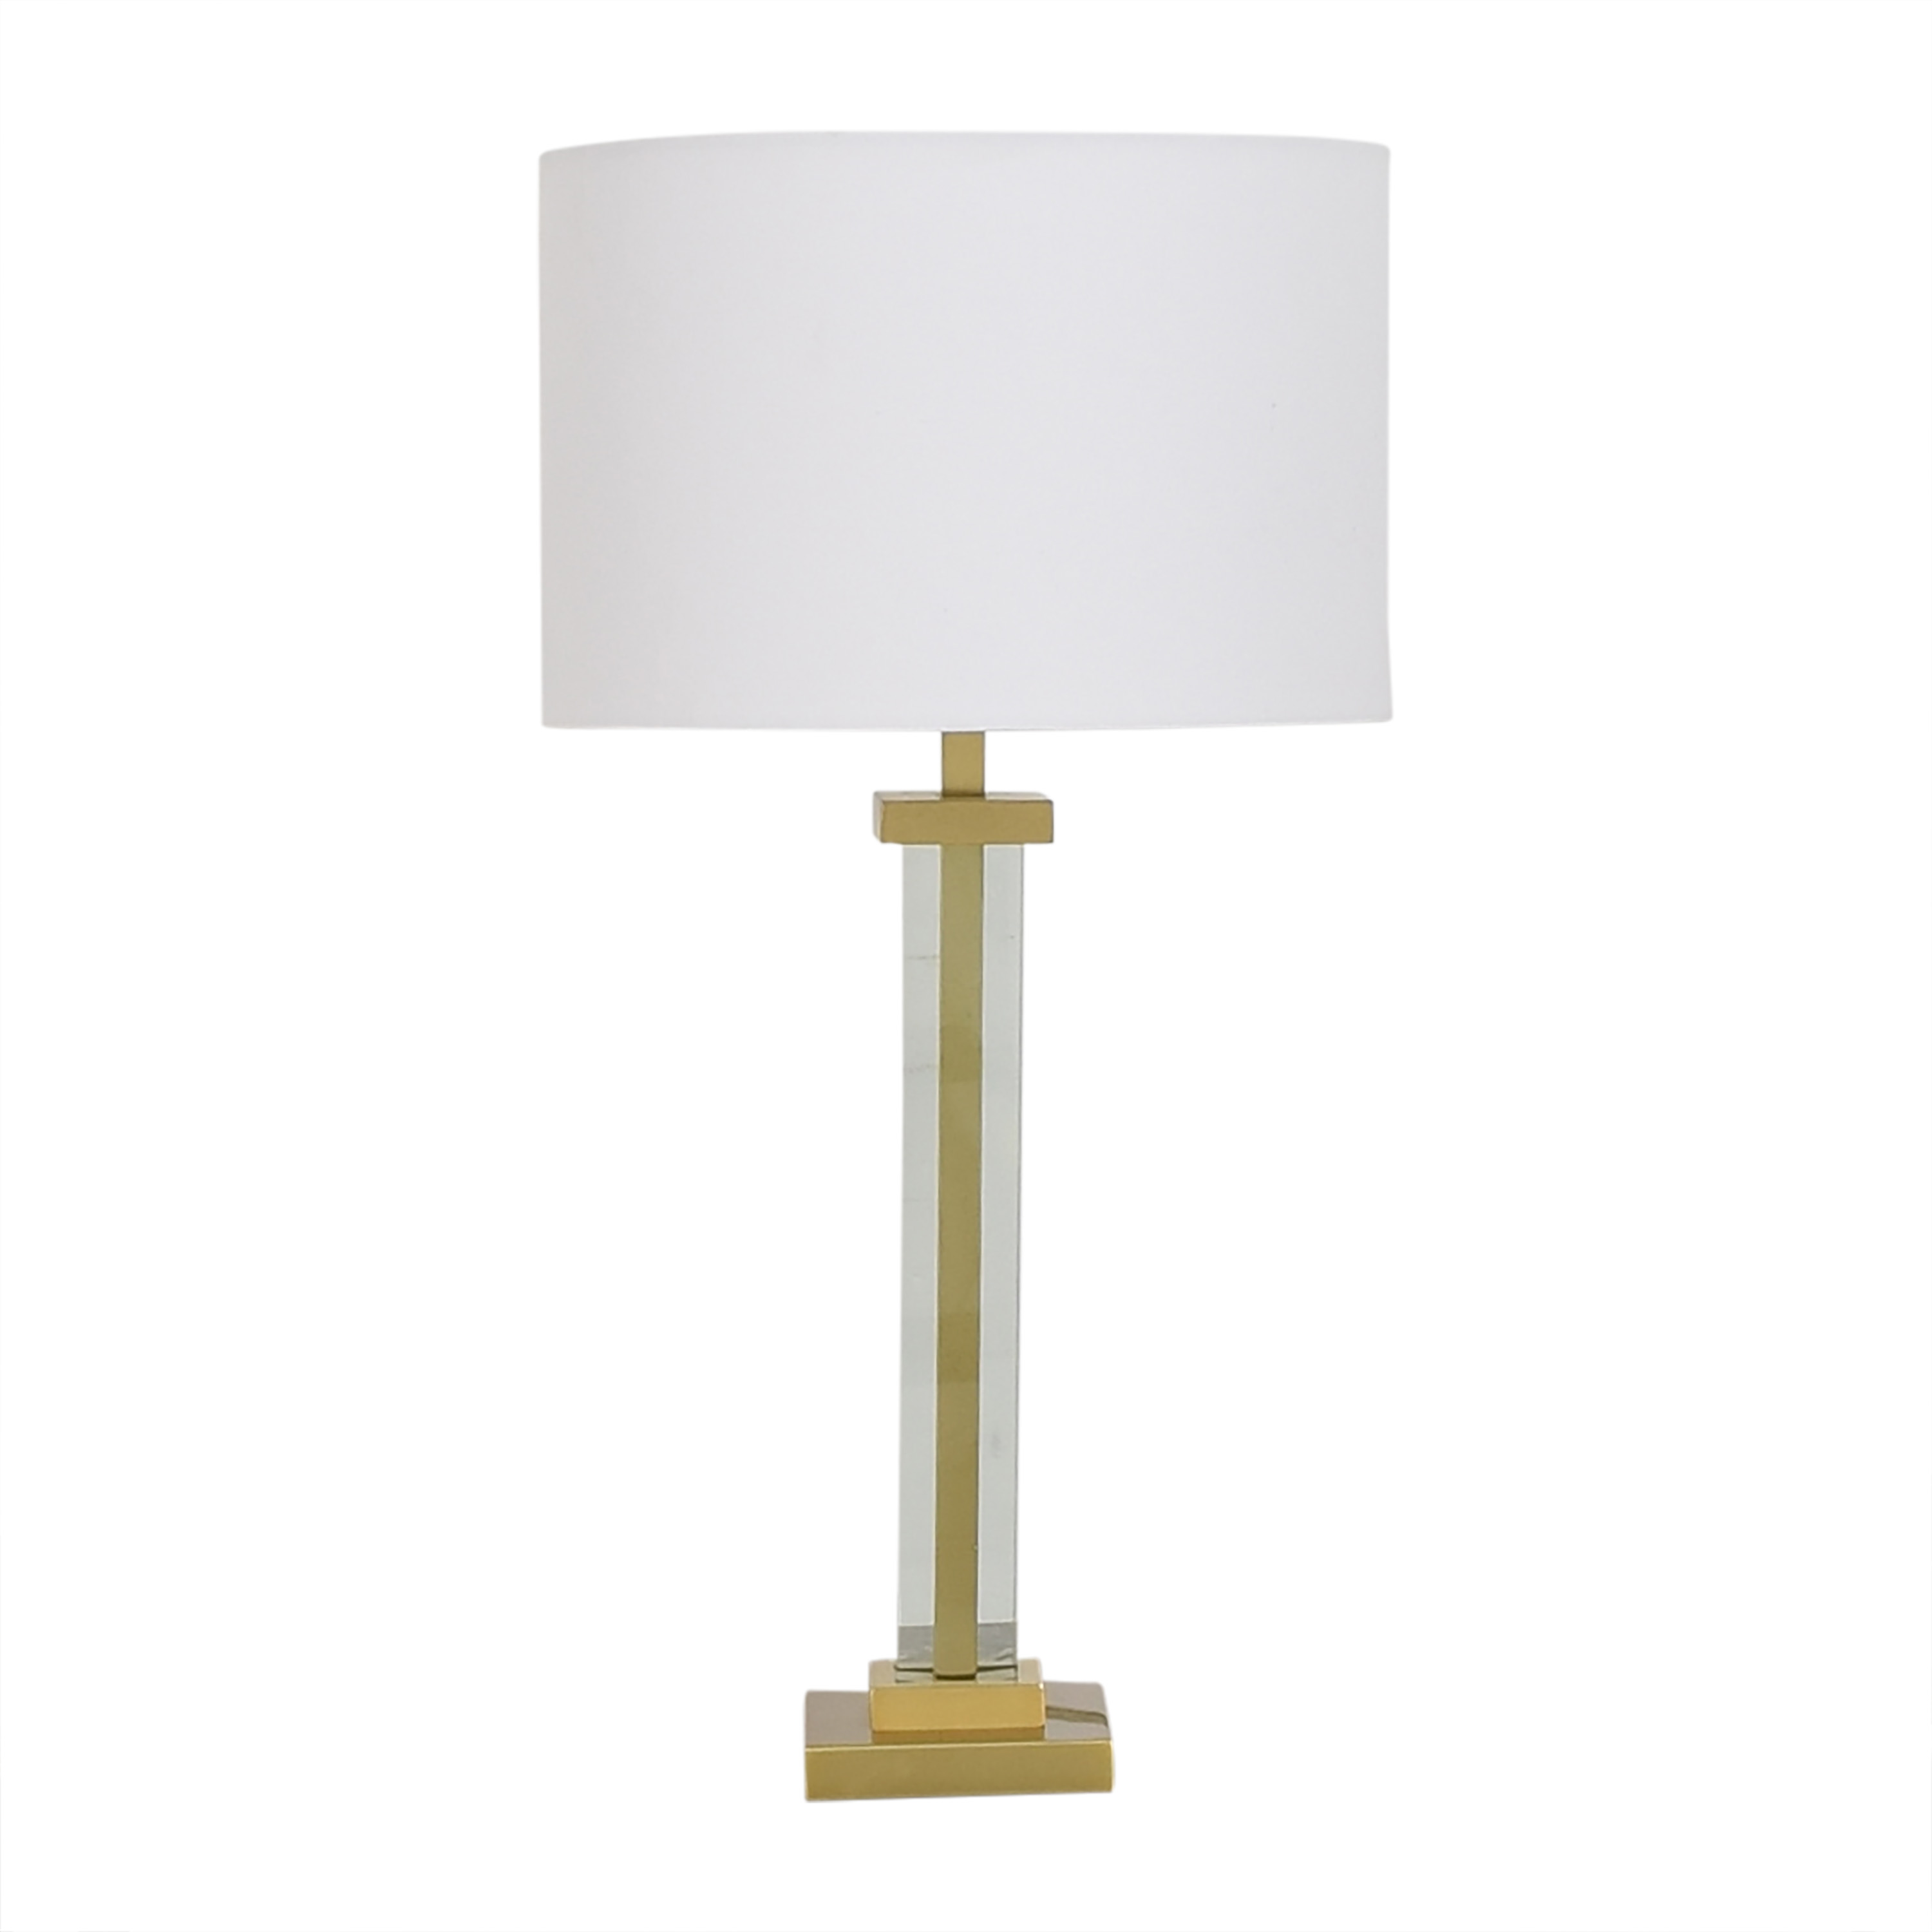 CB2 CB2 Table Lamp on sale